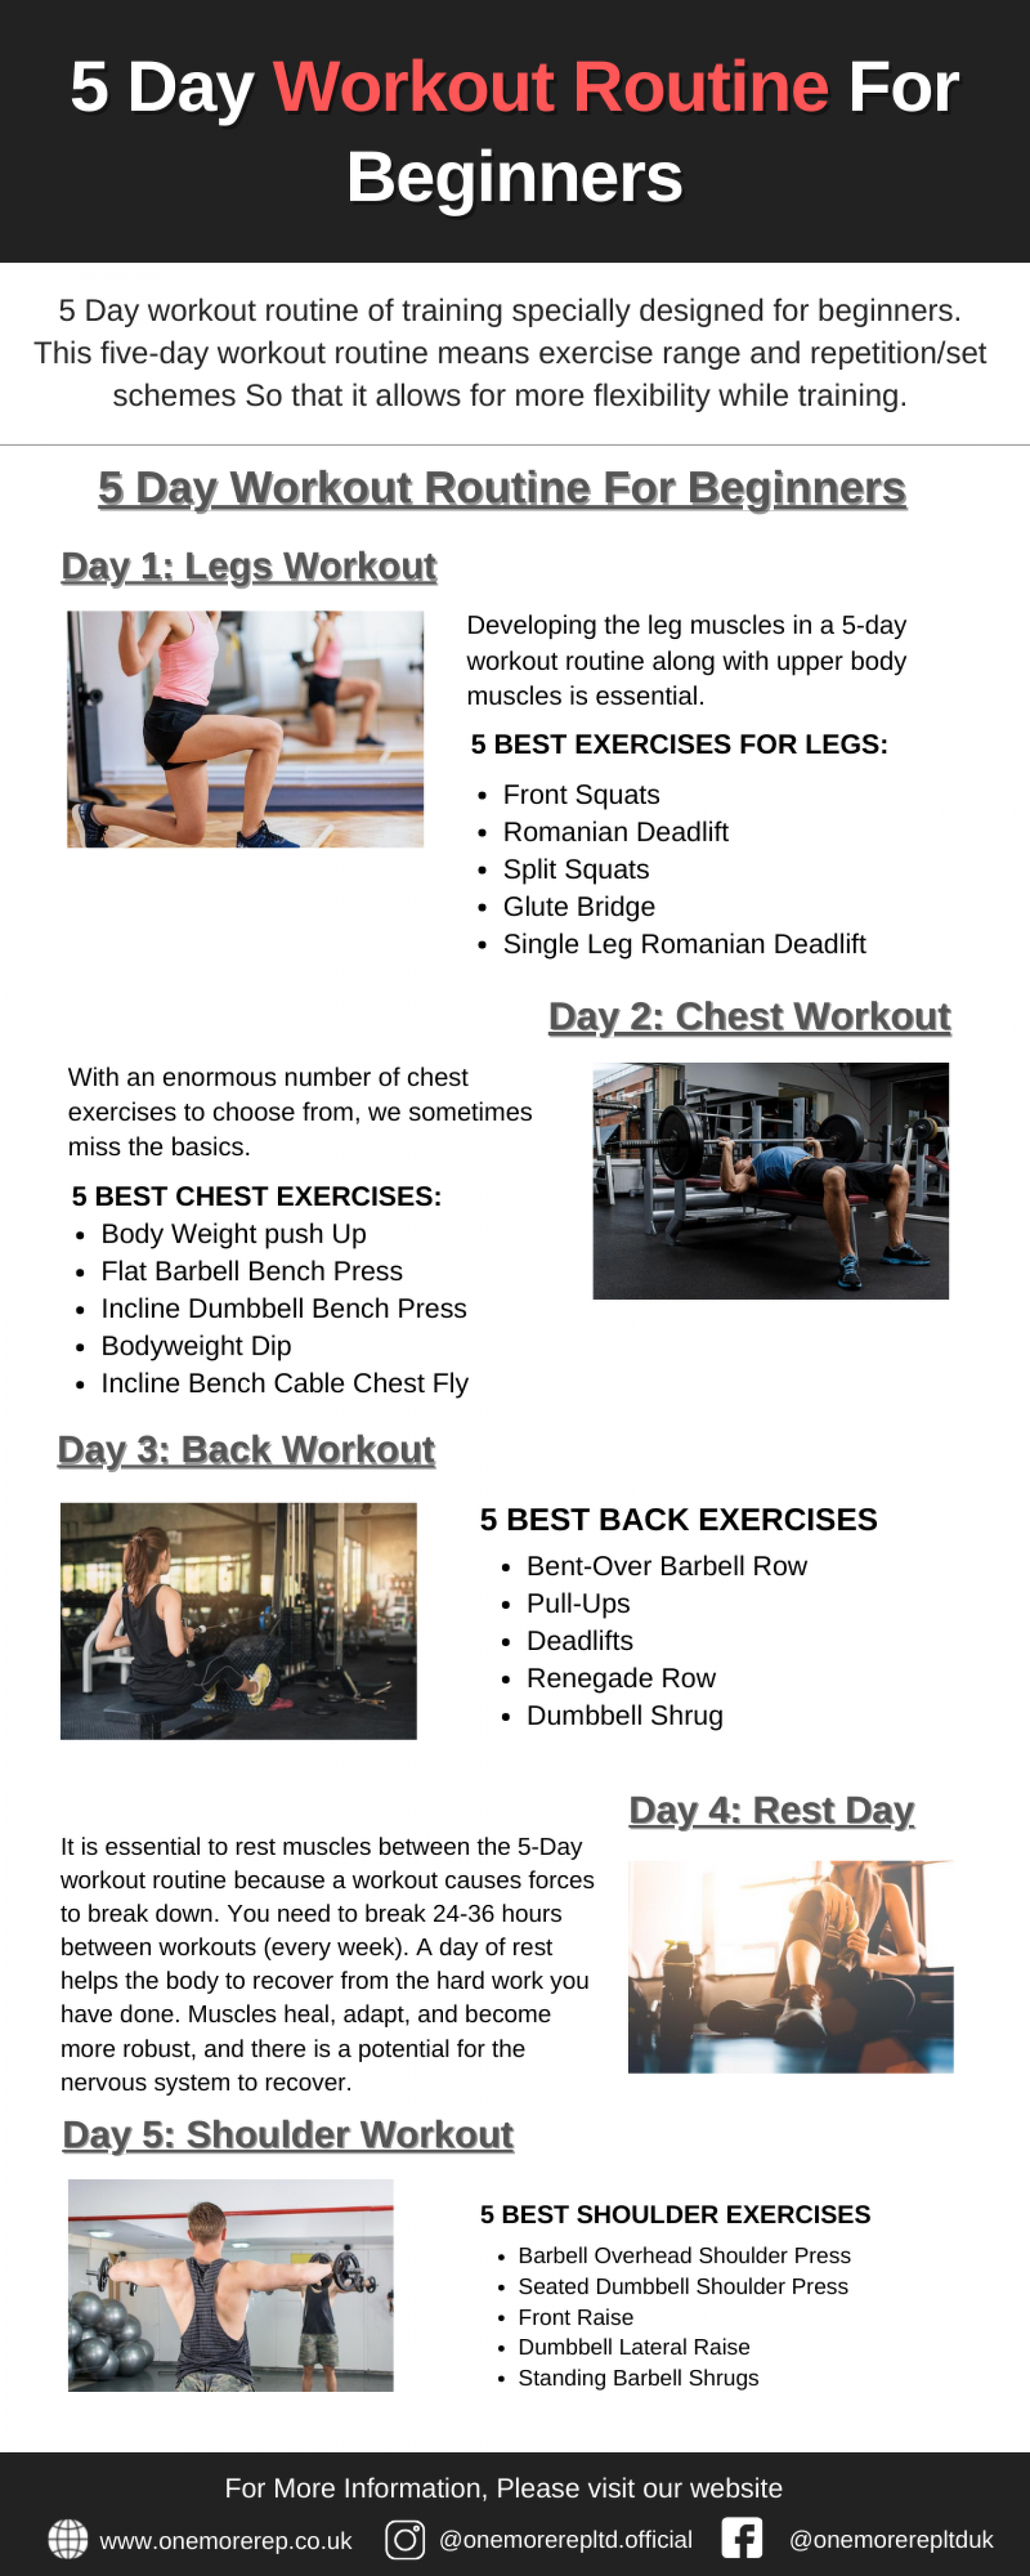 5 Day Workout Routine For Beginners Infographic